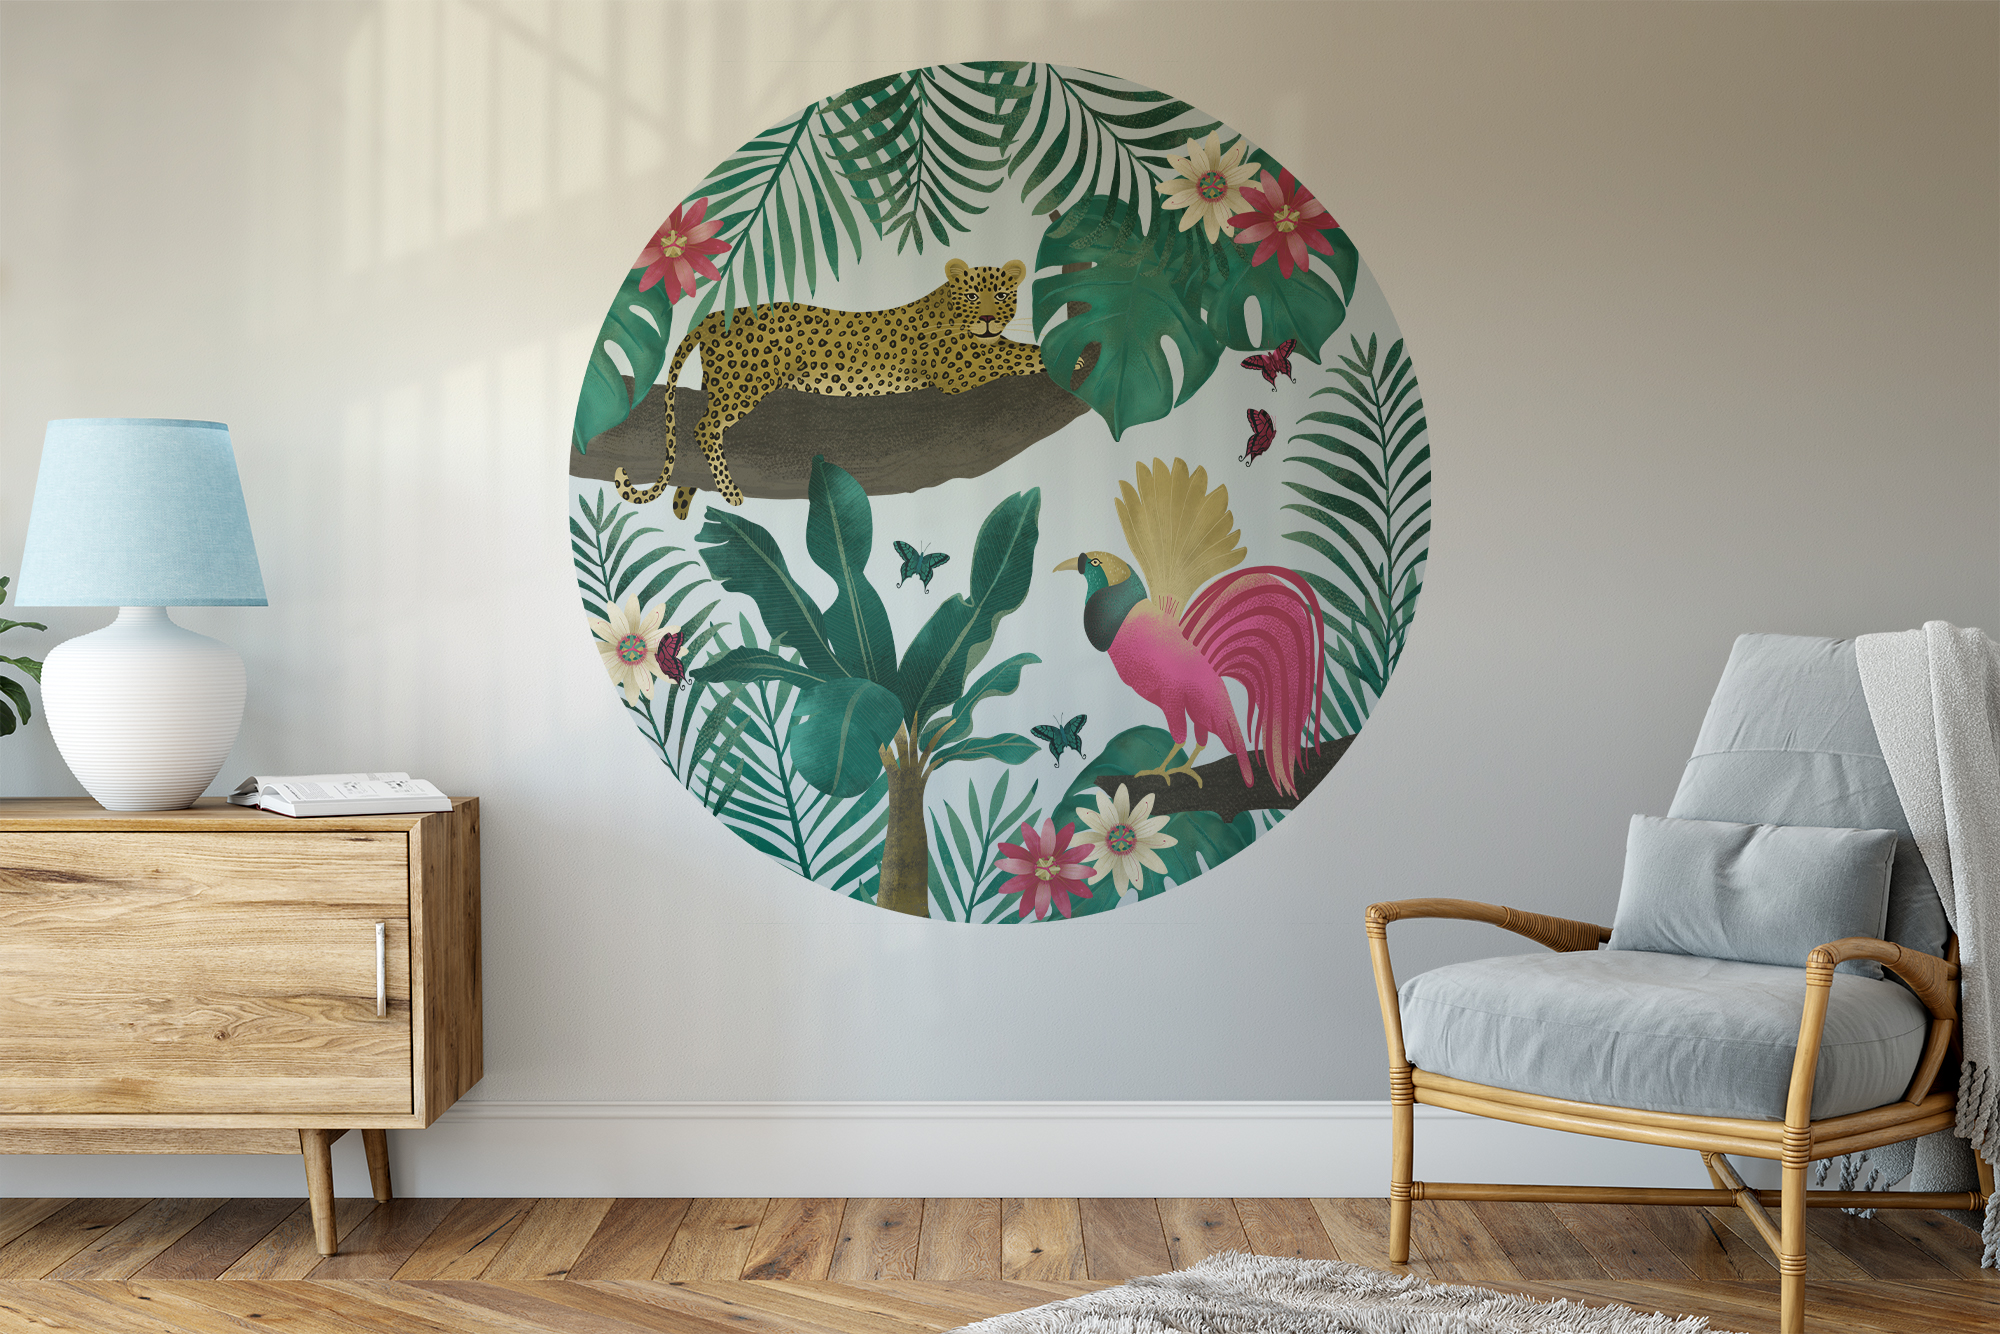 muursticker jungle luipaard in woonkamer Perron 11